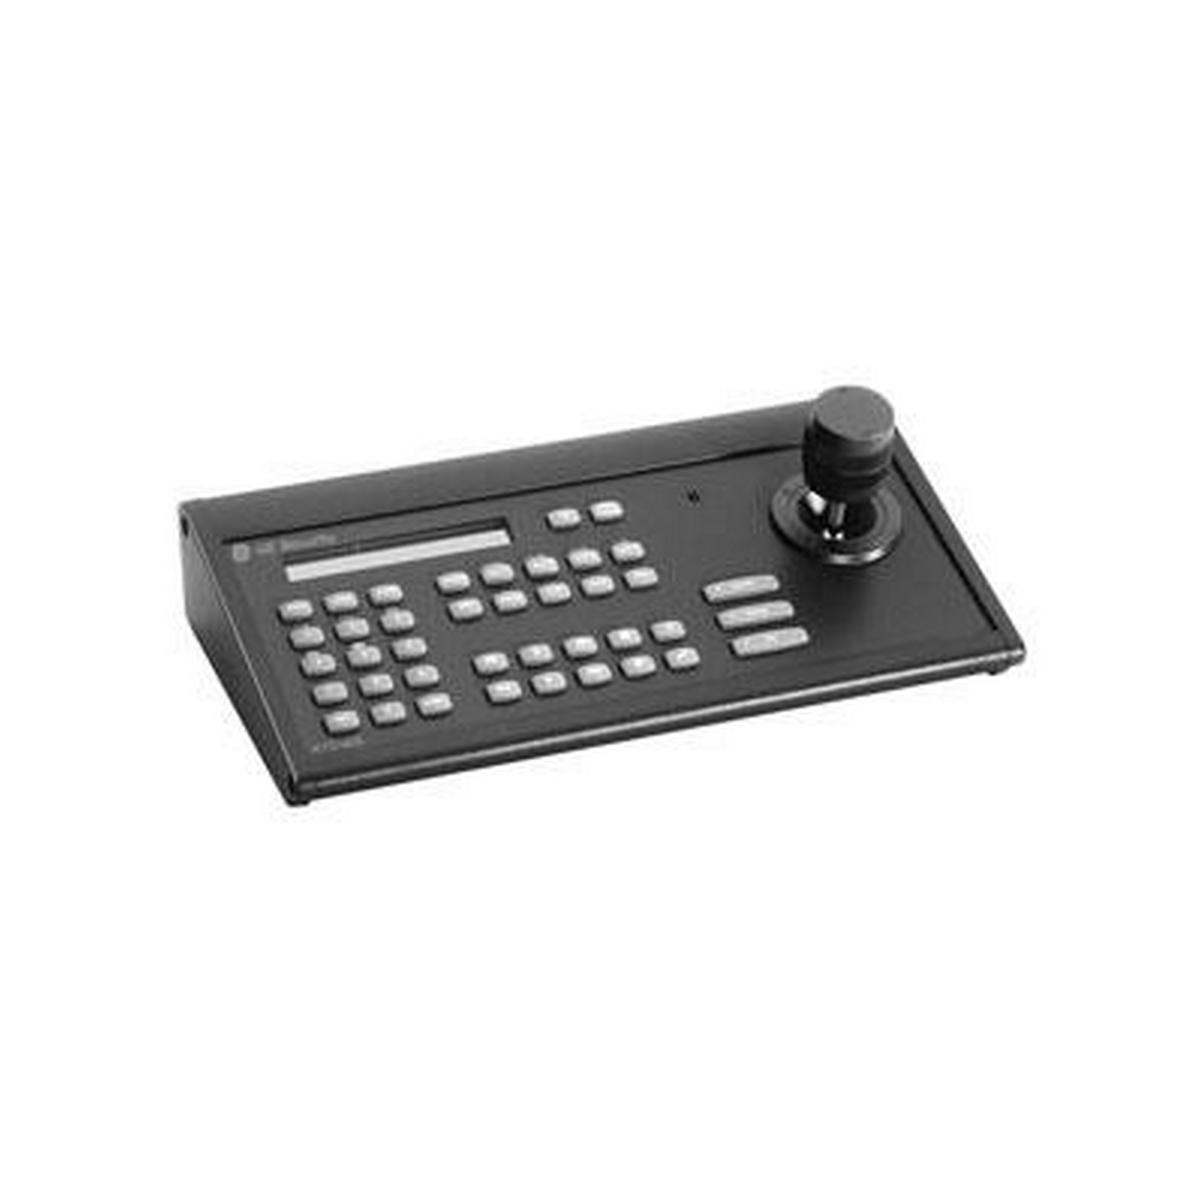 G.E. KTD-405   3 Axis variable speed joystick controller keypad